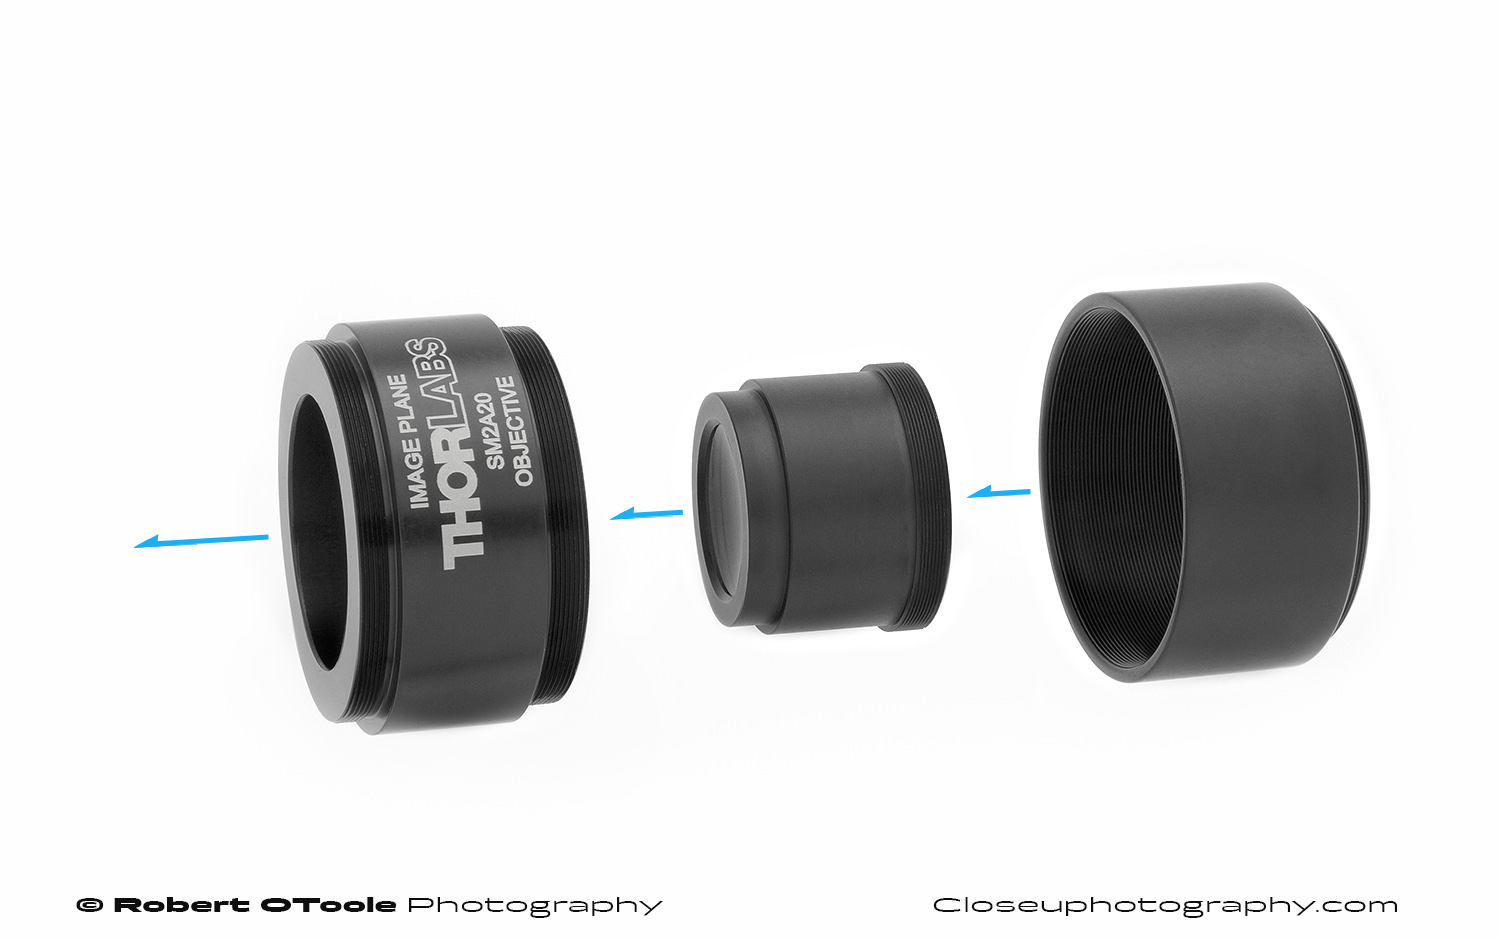 Thorlabs SM2A20 tube lens adapter, ITL200 tube lens, and SM2 extension tube.